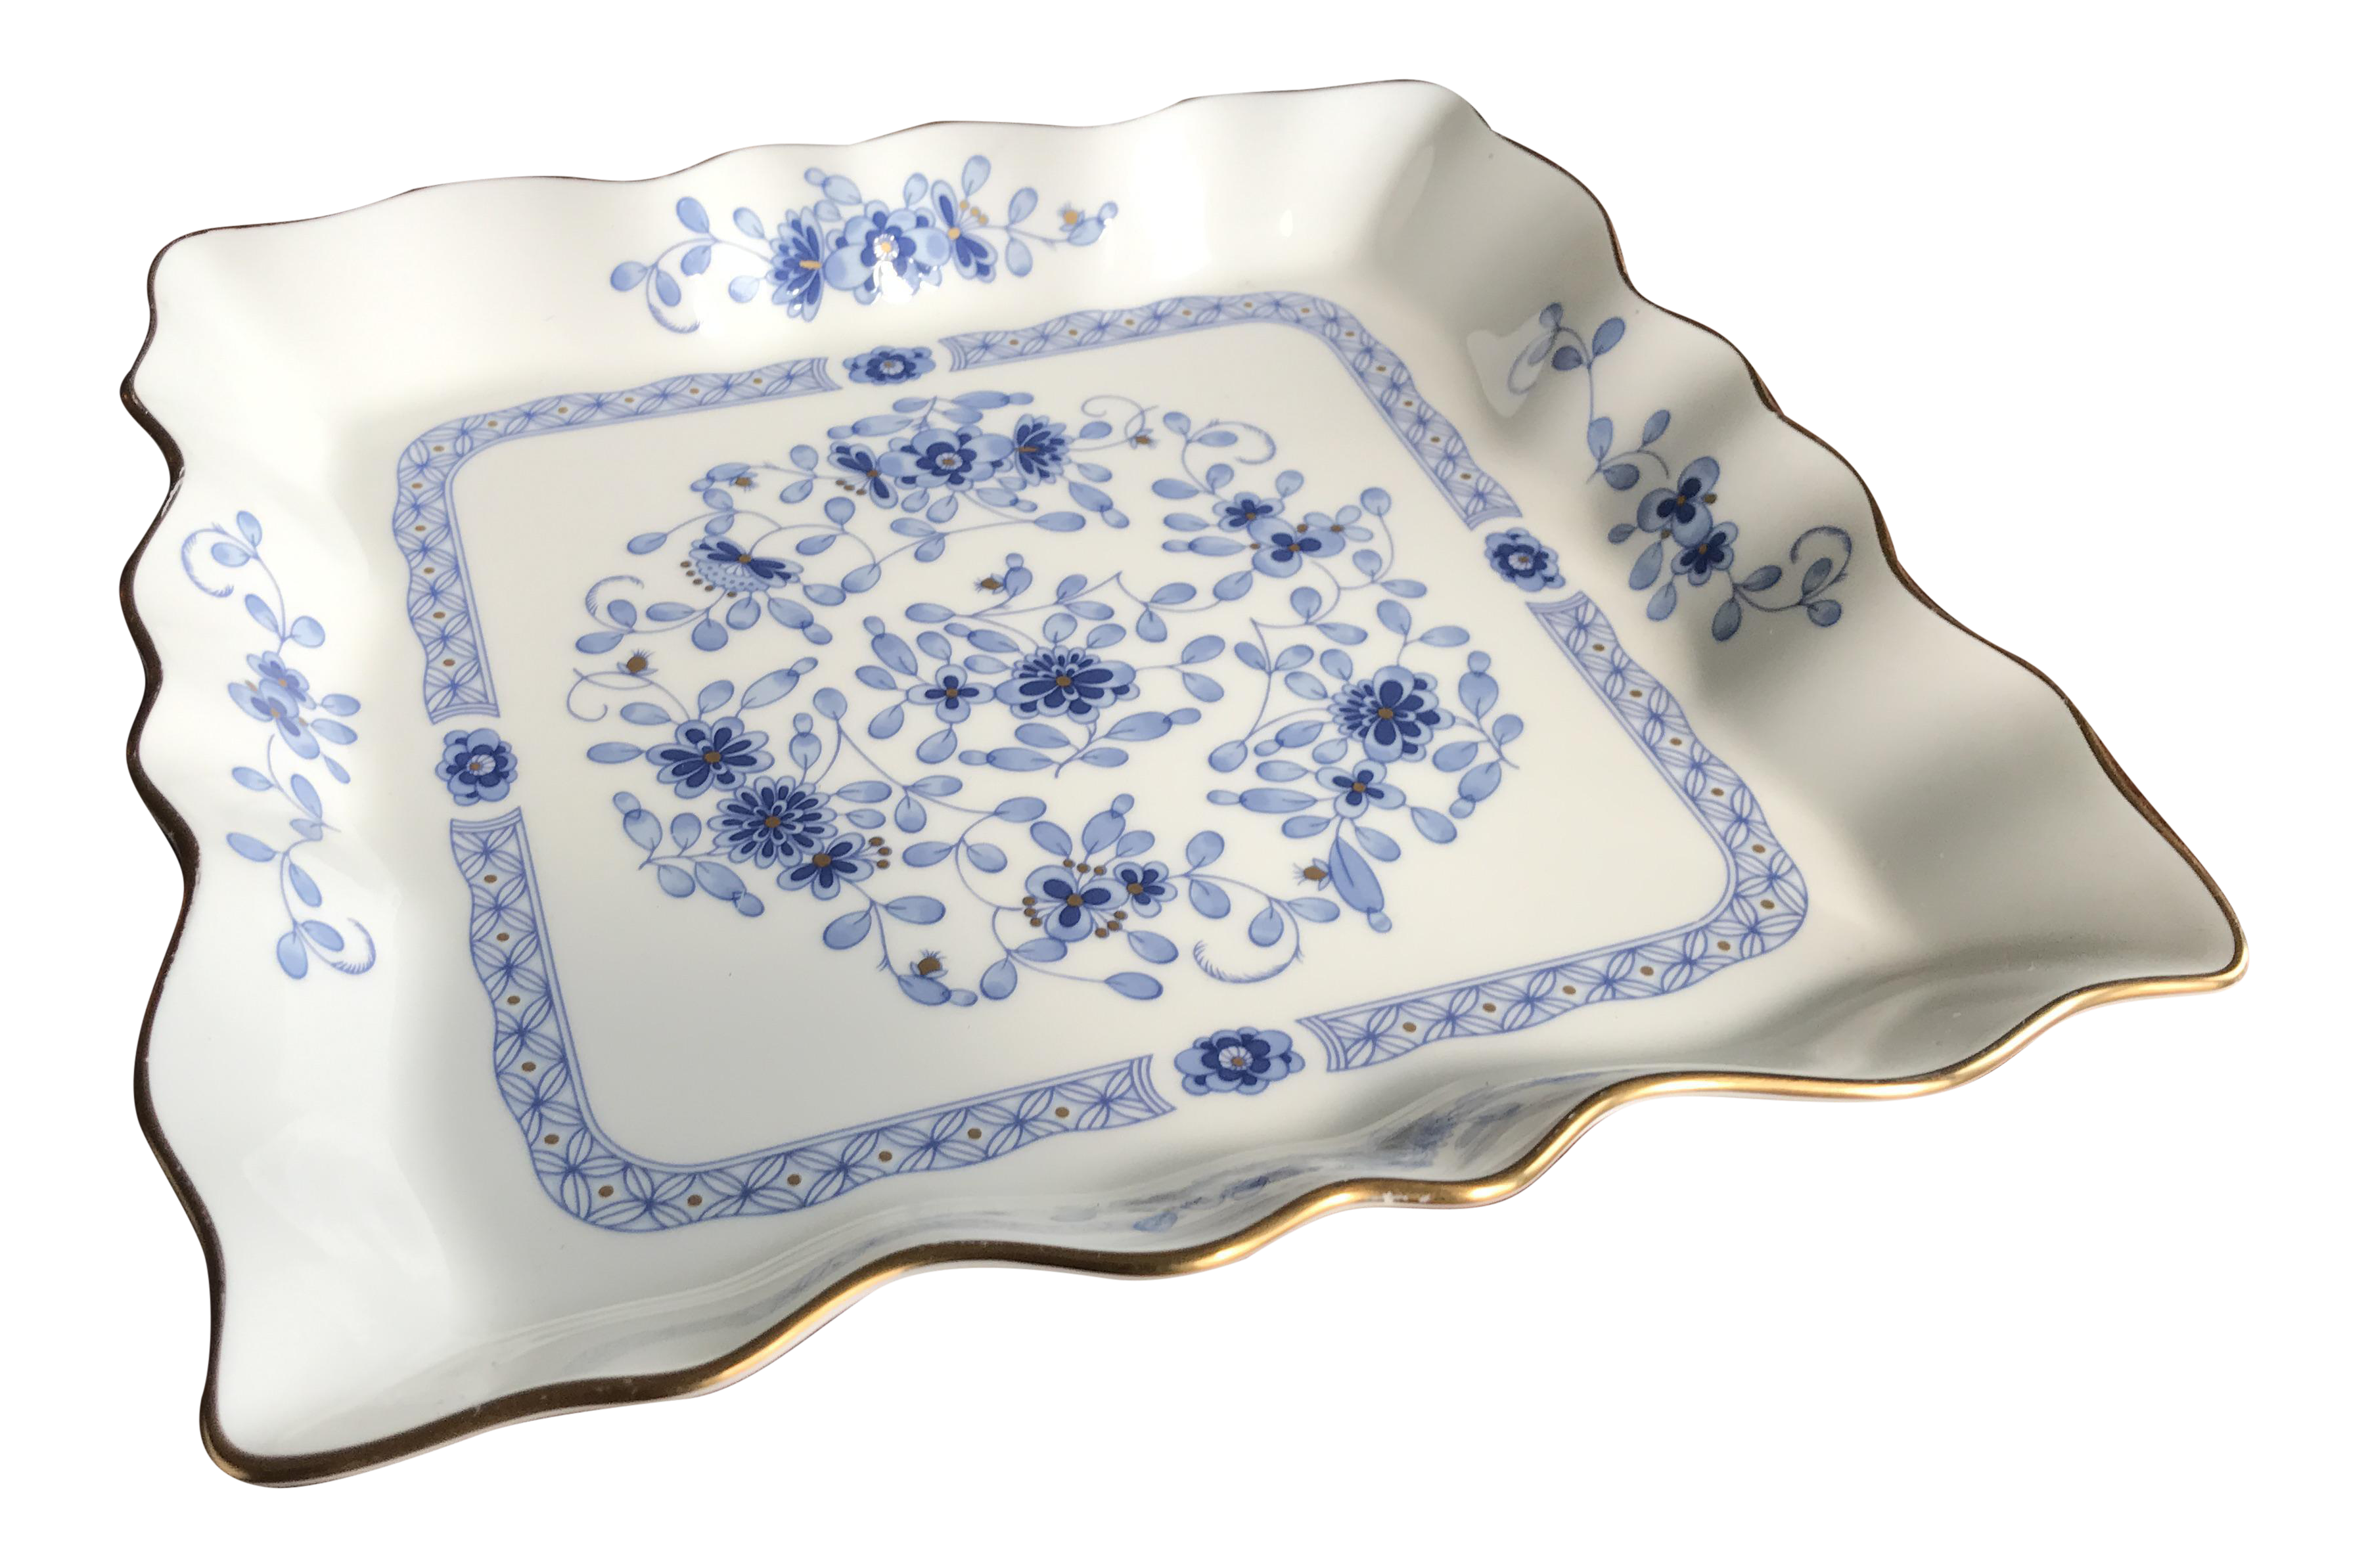 Gently Used & Vintage Asian Modern Decor for Sale at Chairish